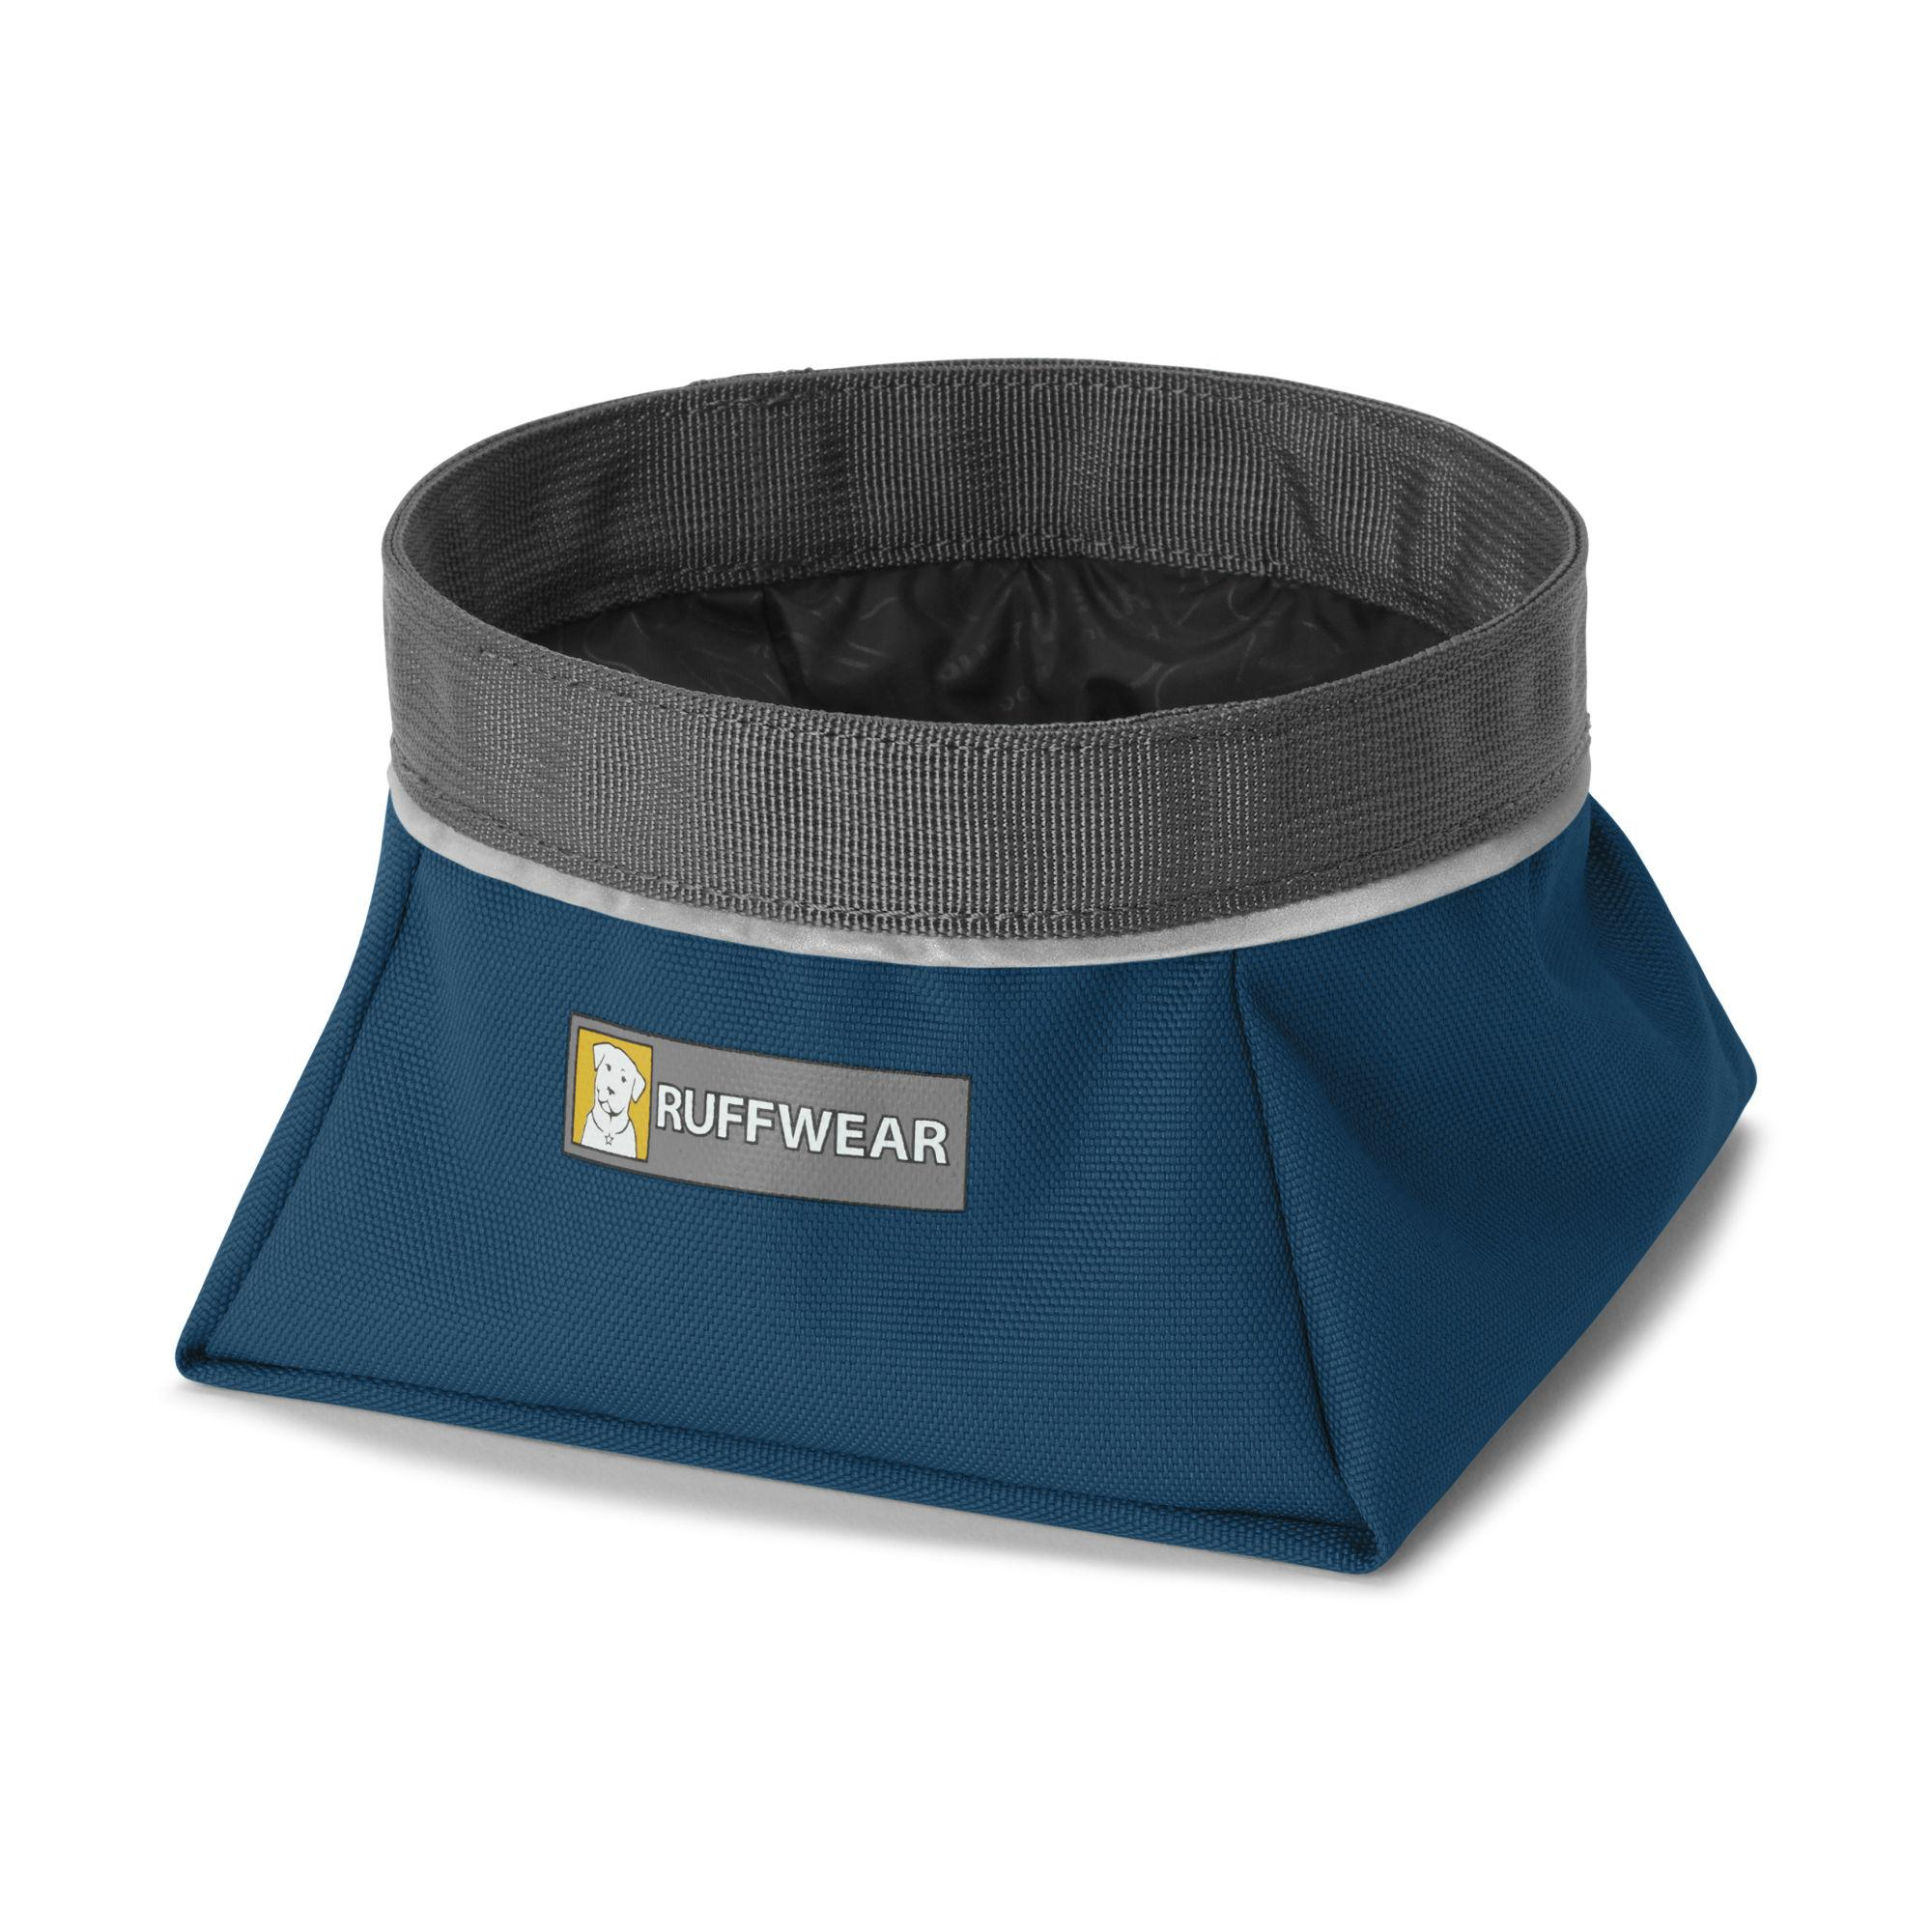 Quencher Travel Dog Bowl by RuffWear - Blue Moon